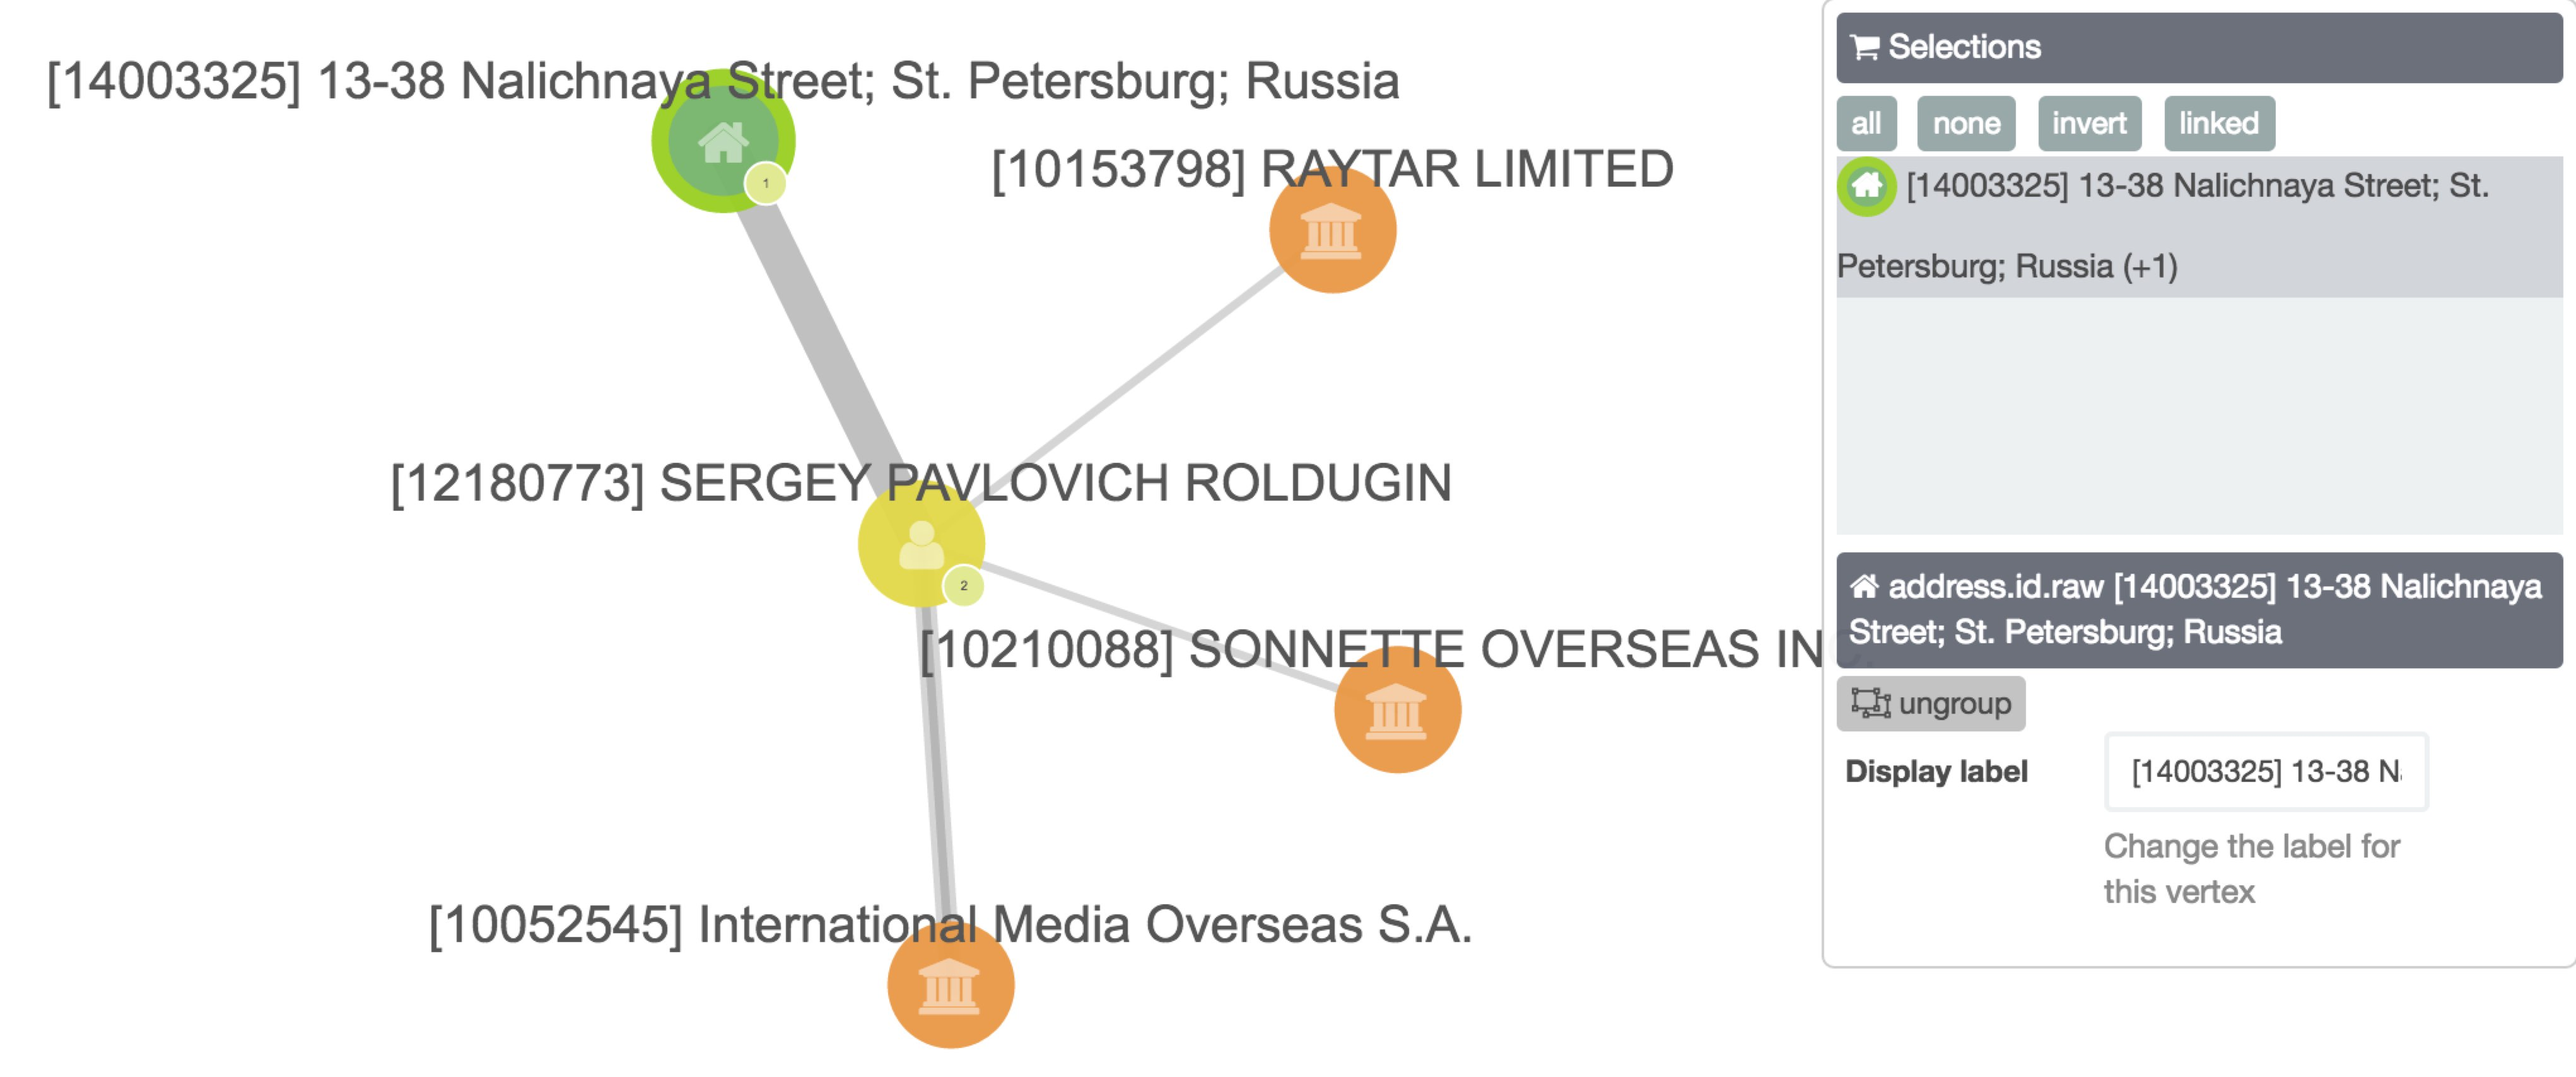 panama-papers-grouping-vertices.jpg